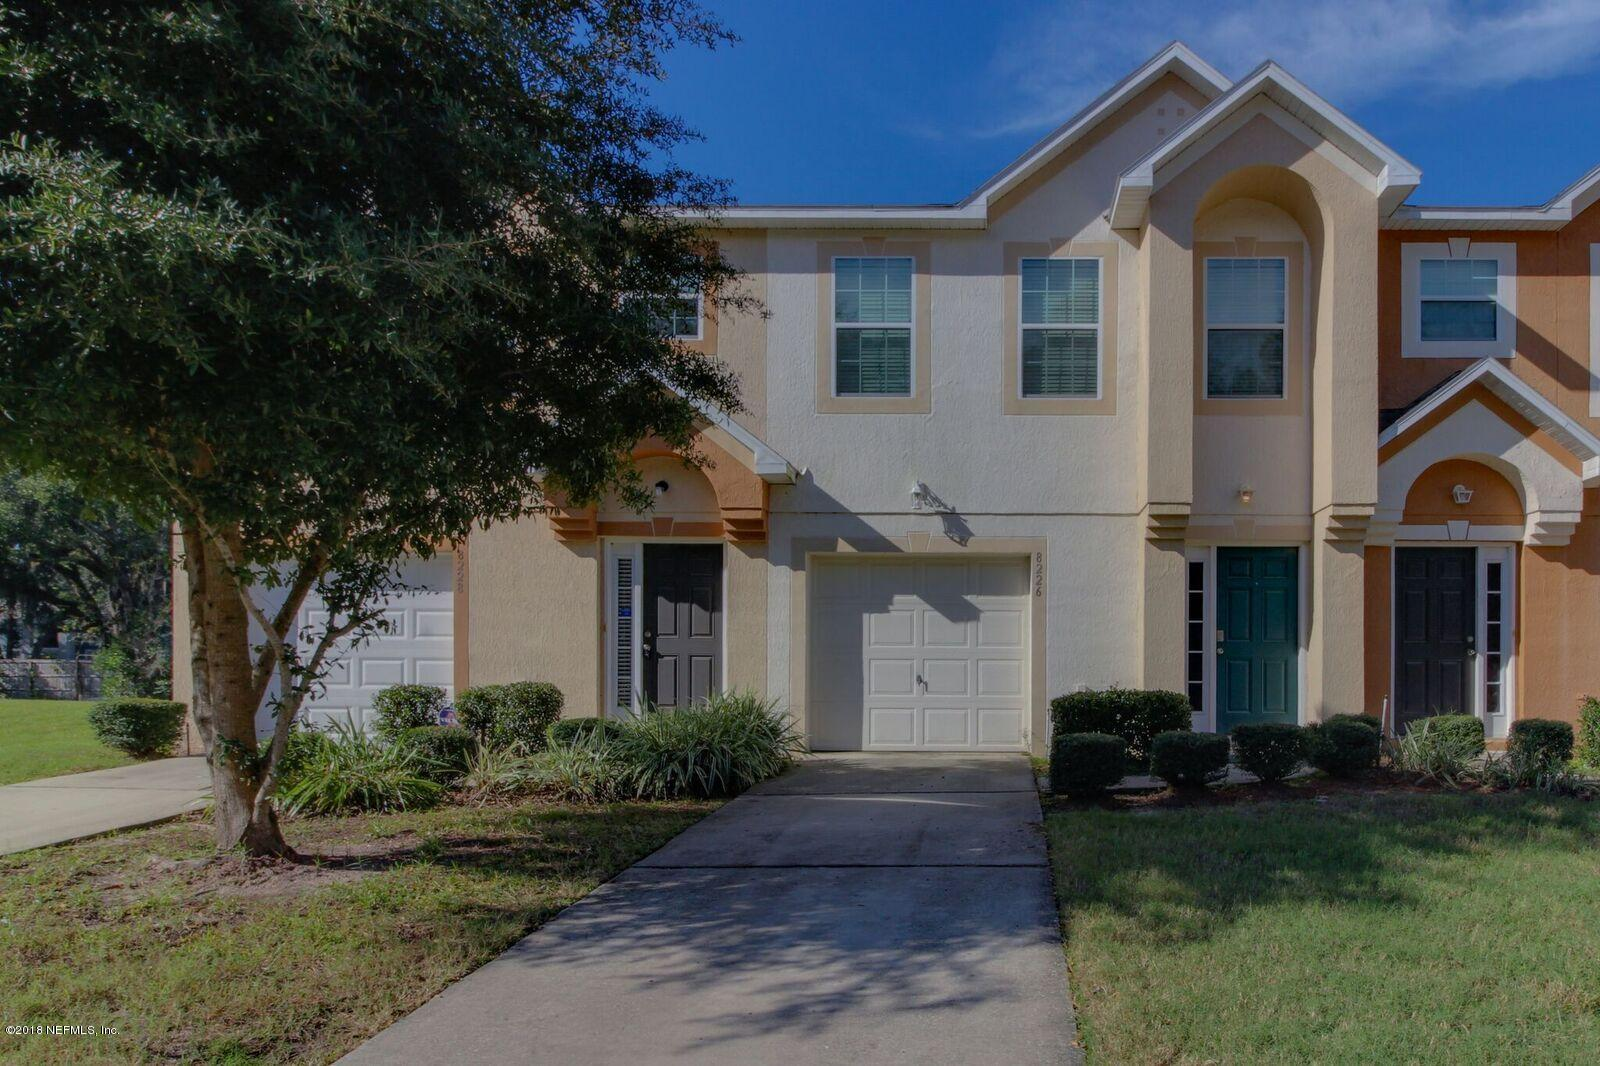 8226 HALLS HAMMOCK, JACKSONVILLE, FLORIDA 32244, 3 Bedrooms Bedrooms, ,2 BathroomsBathrooms,Residential - townhome,For sale,HALLS HAMMOCK,970087